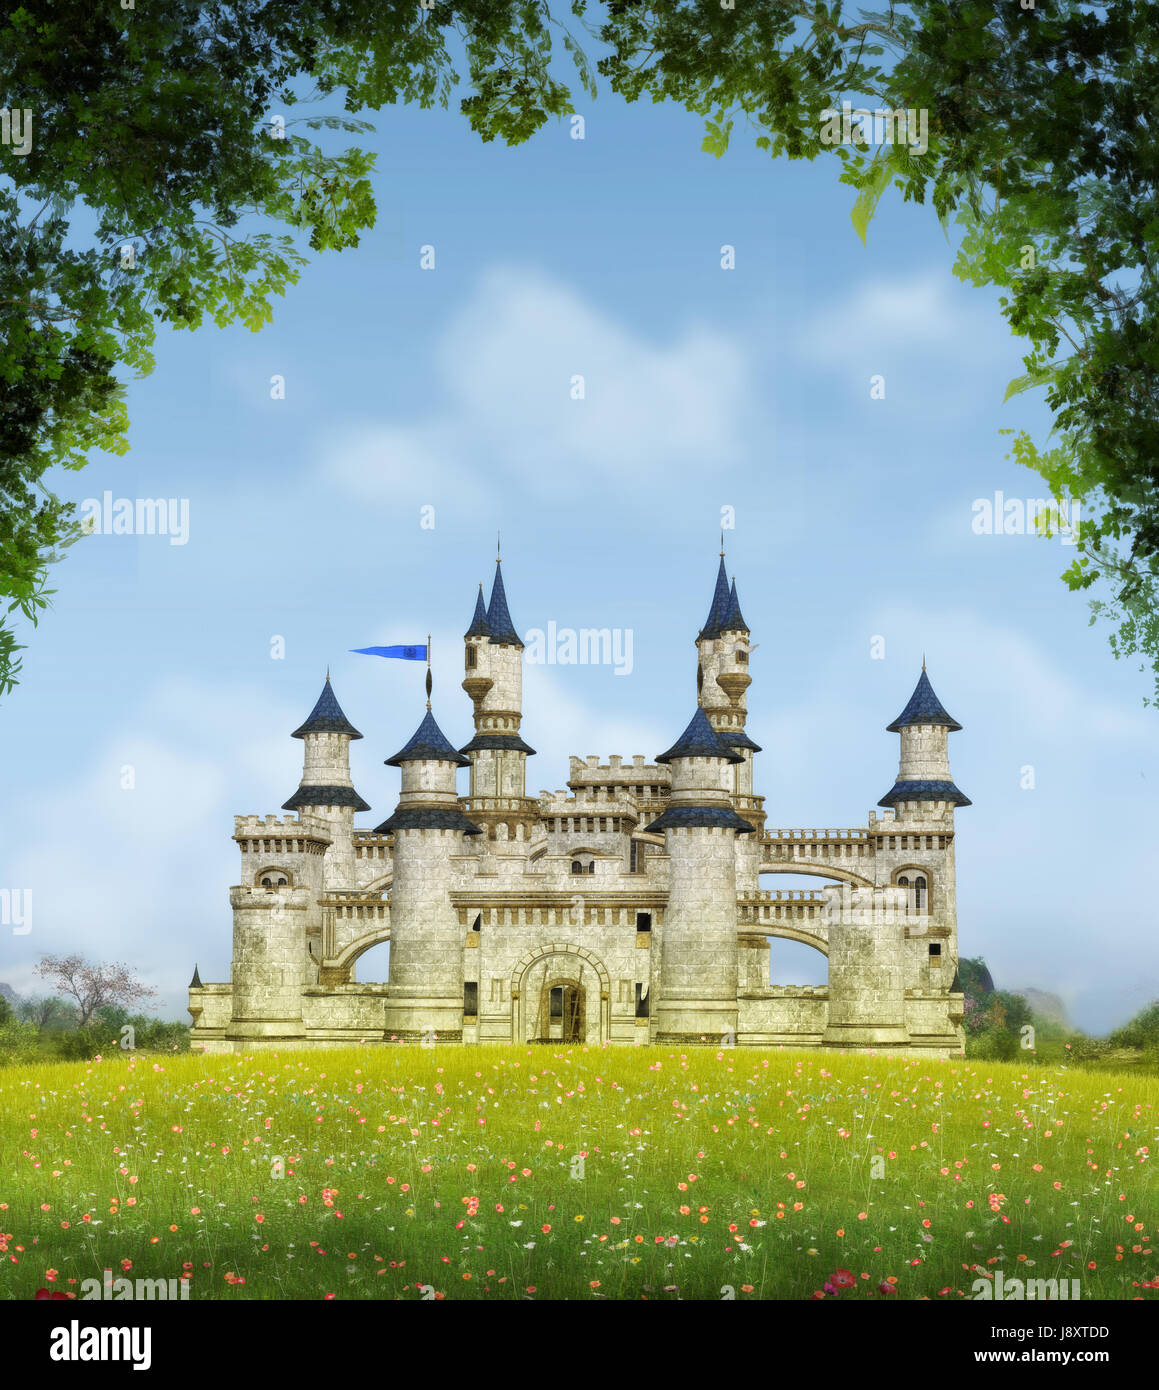 3D rendering of a romantic fairytale castle in an idyllic landscape framed by trees. - Stock Image